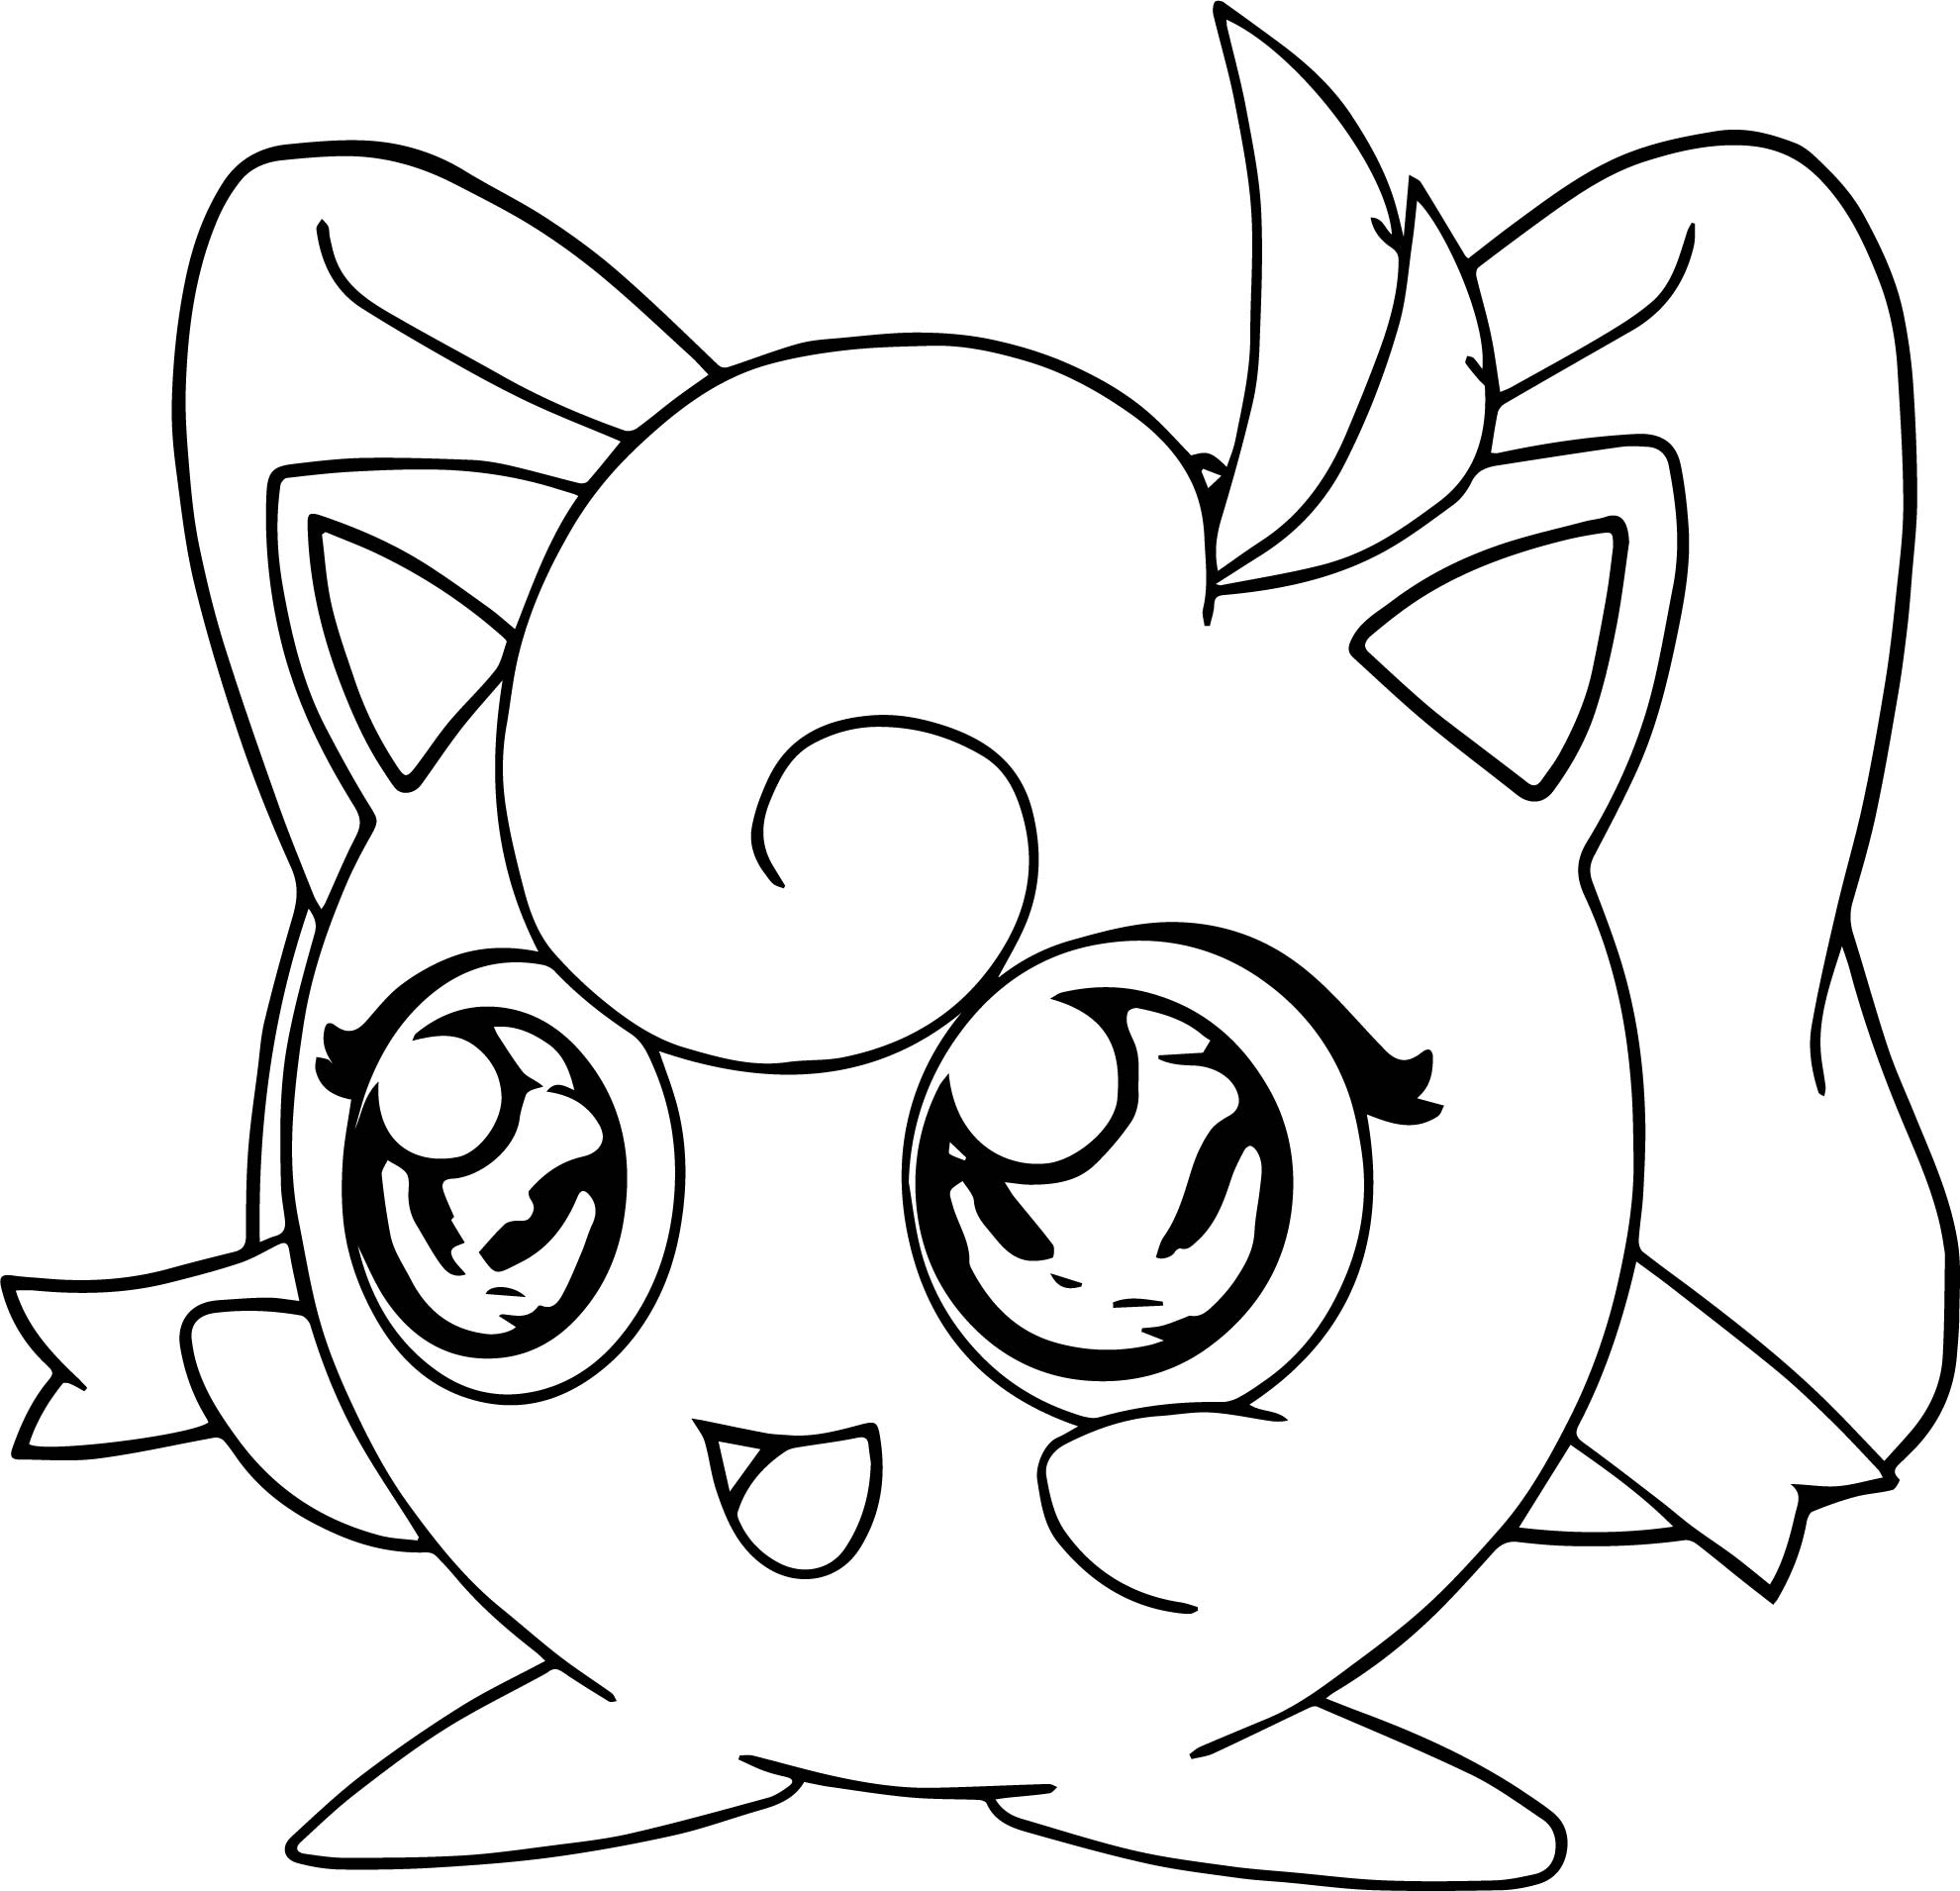 Girl jigglypuff coloring page for Jigglypuff coloring page